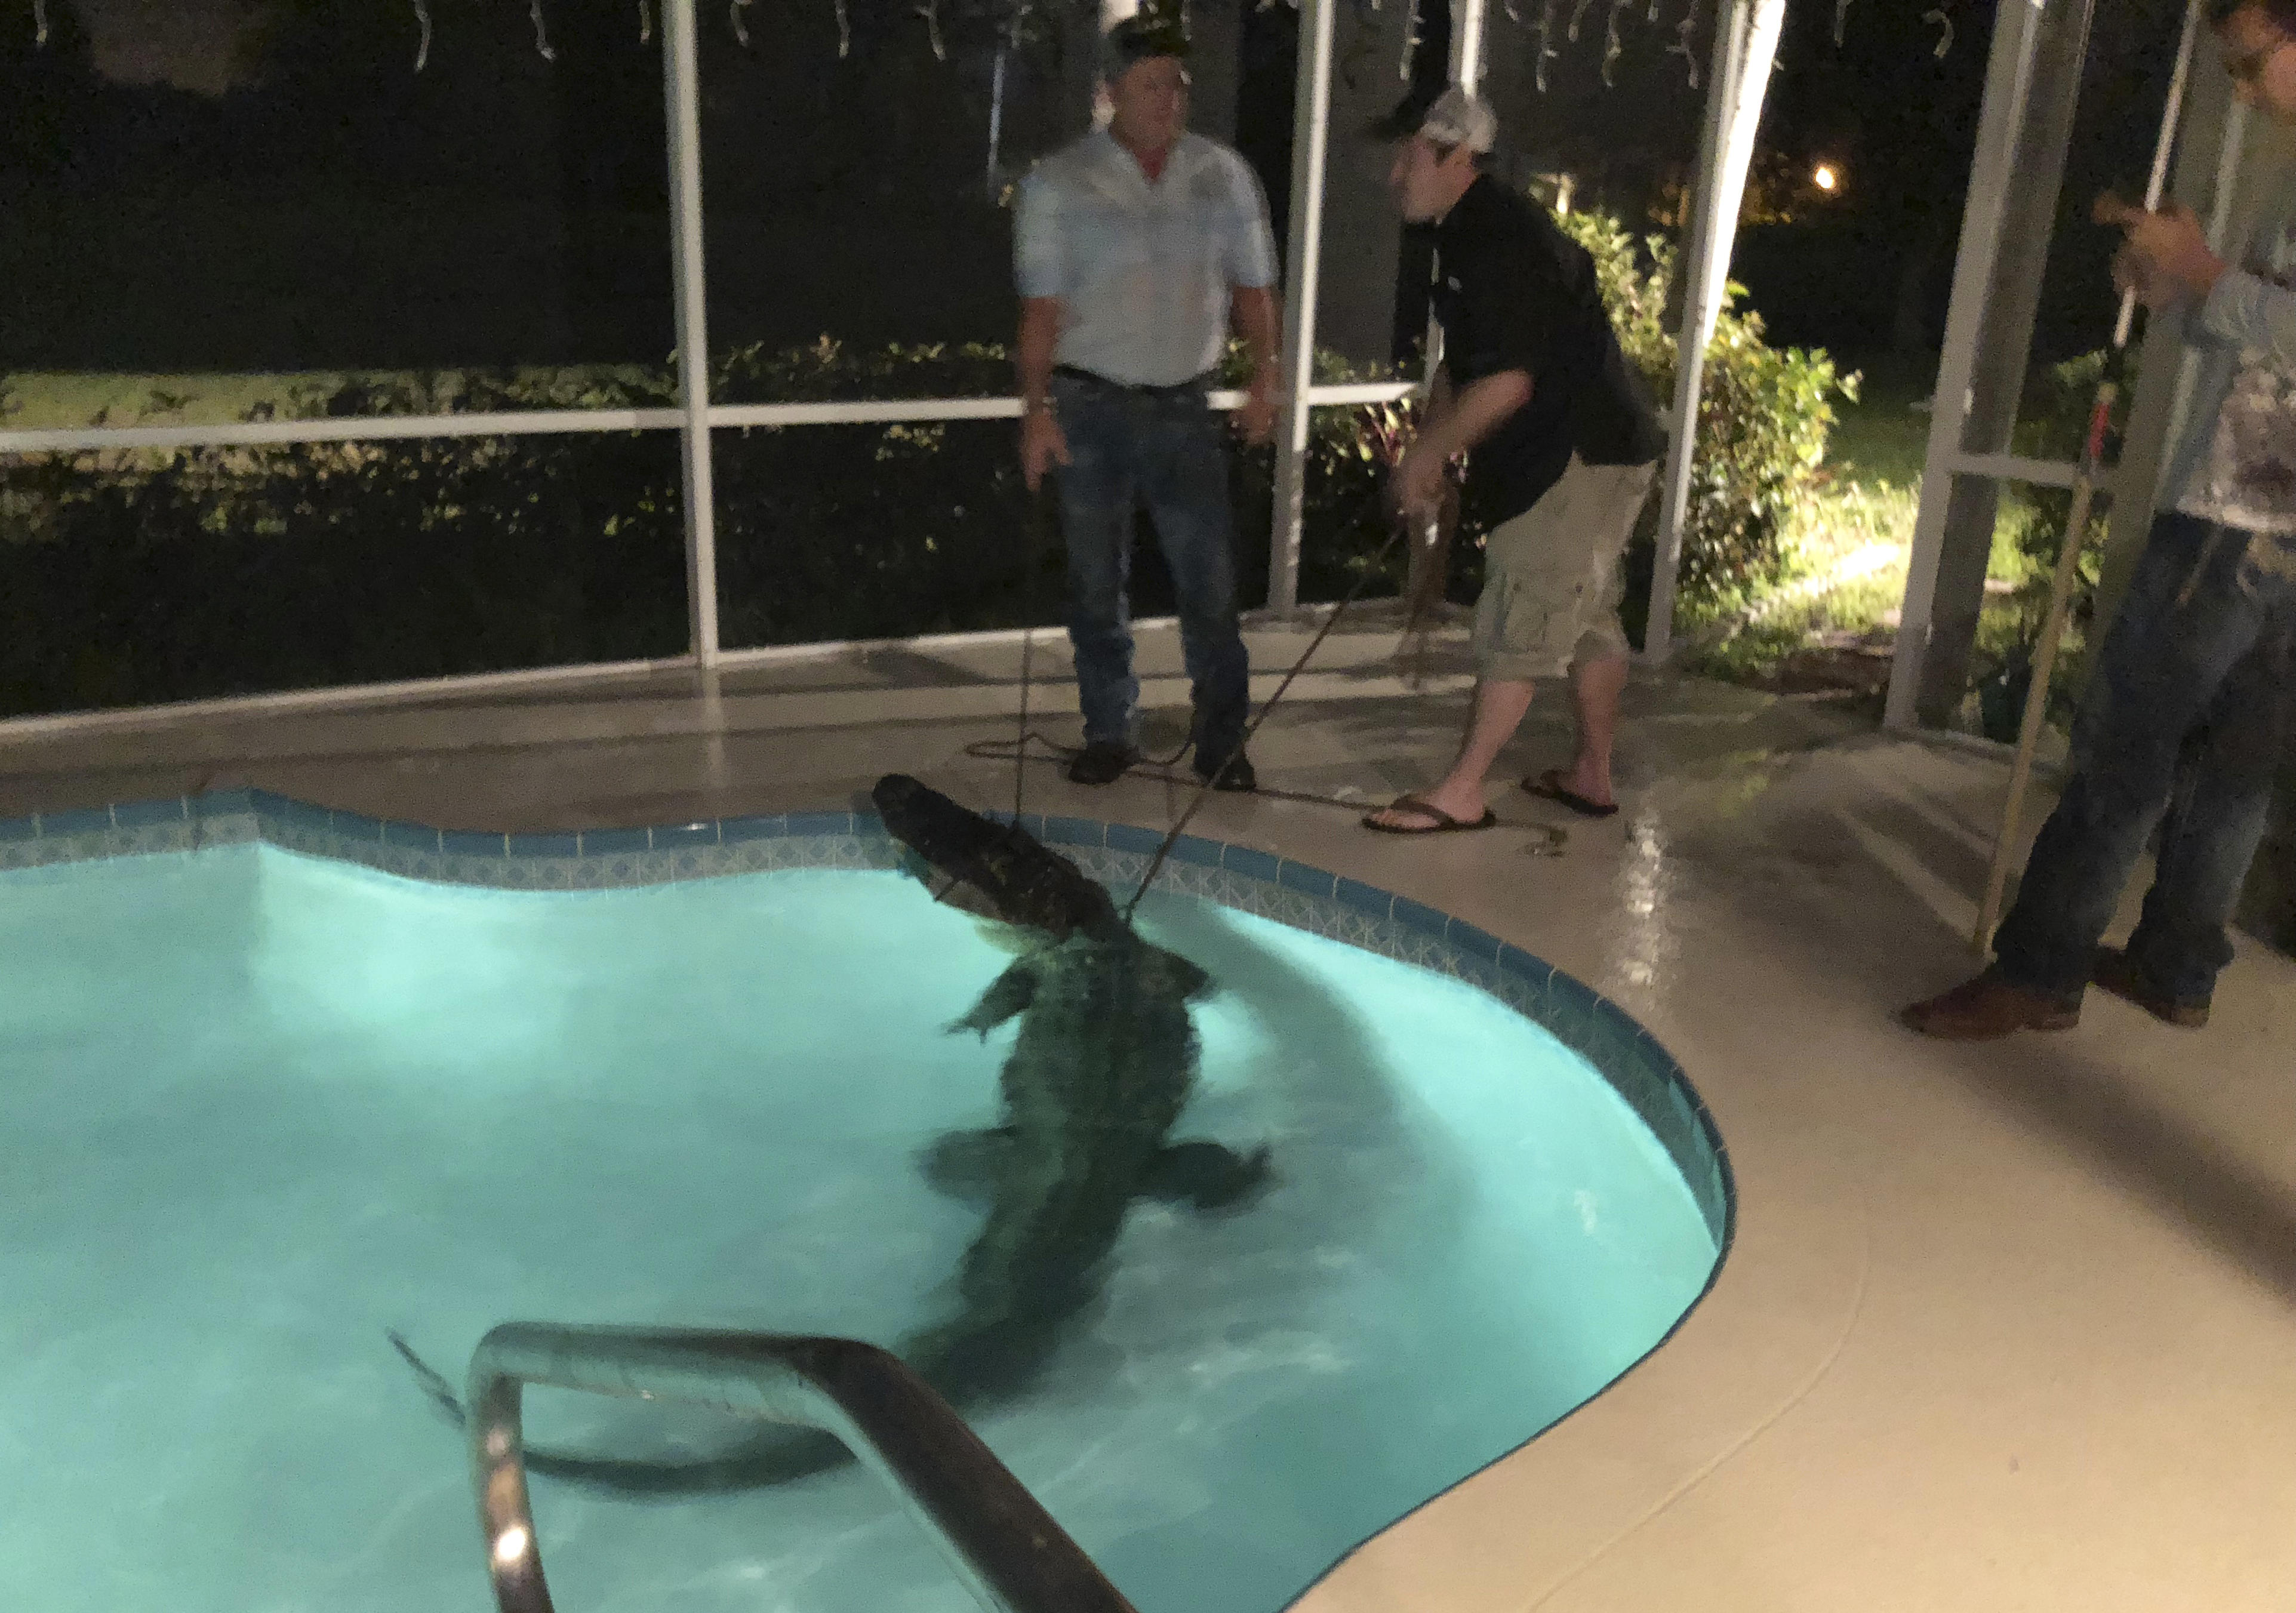 Gator found in Florida family\'s backyard swimming pool - CBS News